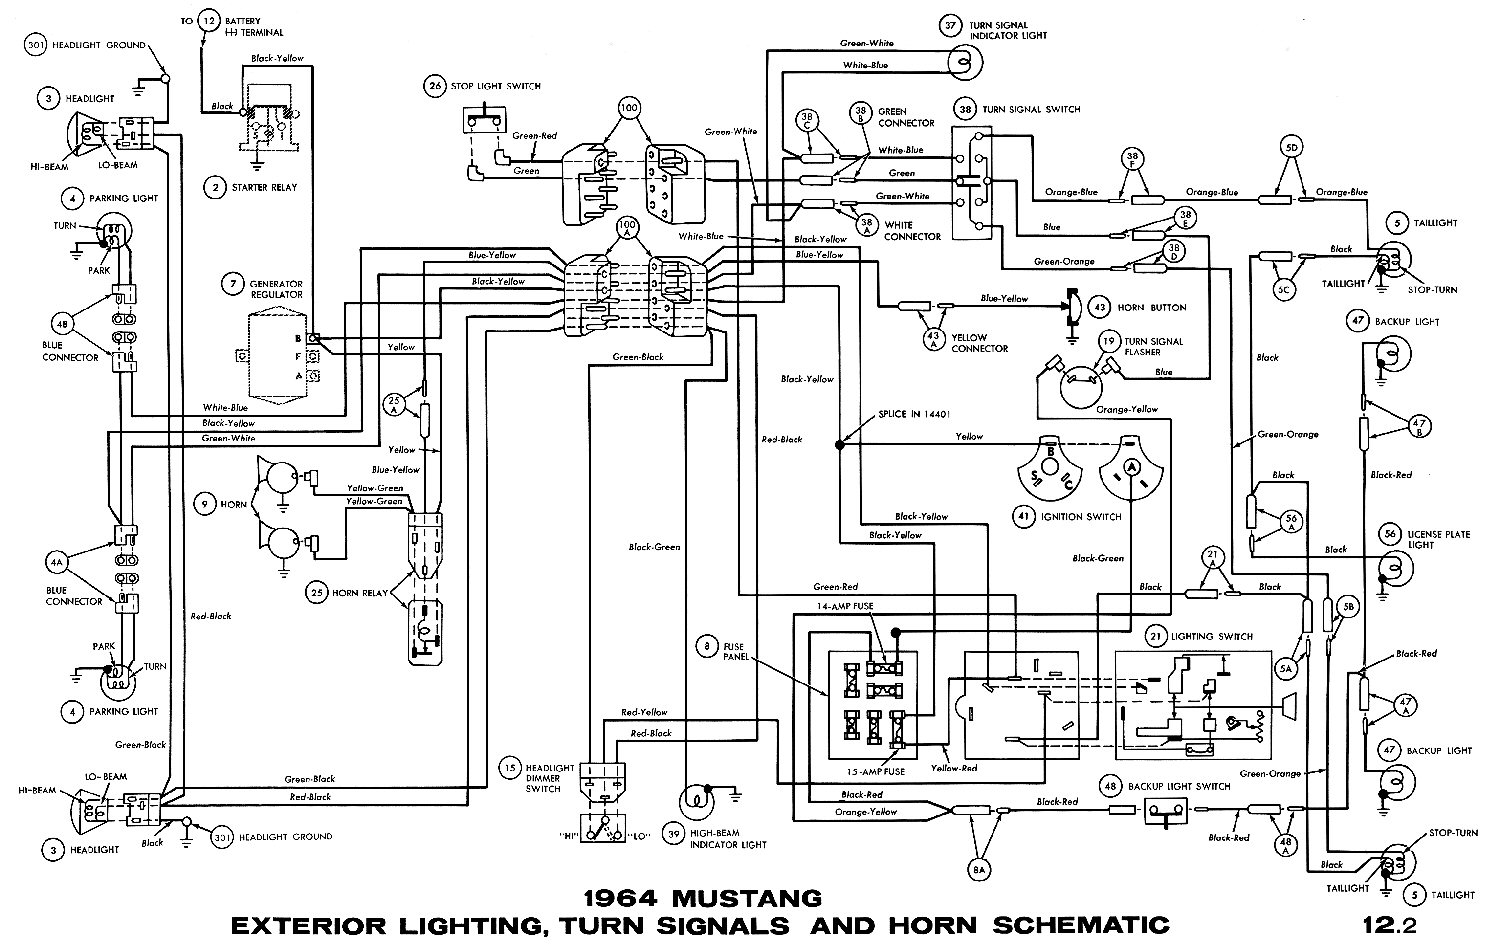 Ford Ignition Switch Wiring Diagram from averagejoerestoration.com